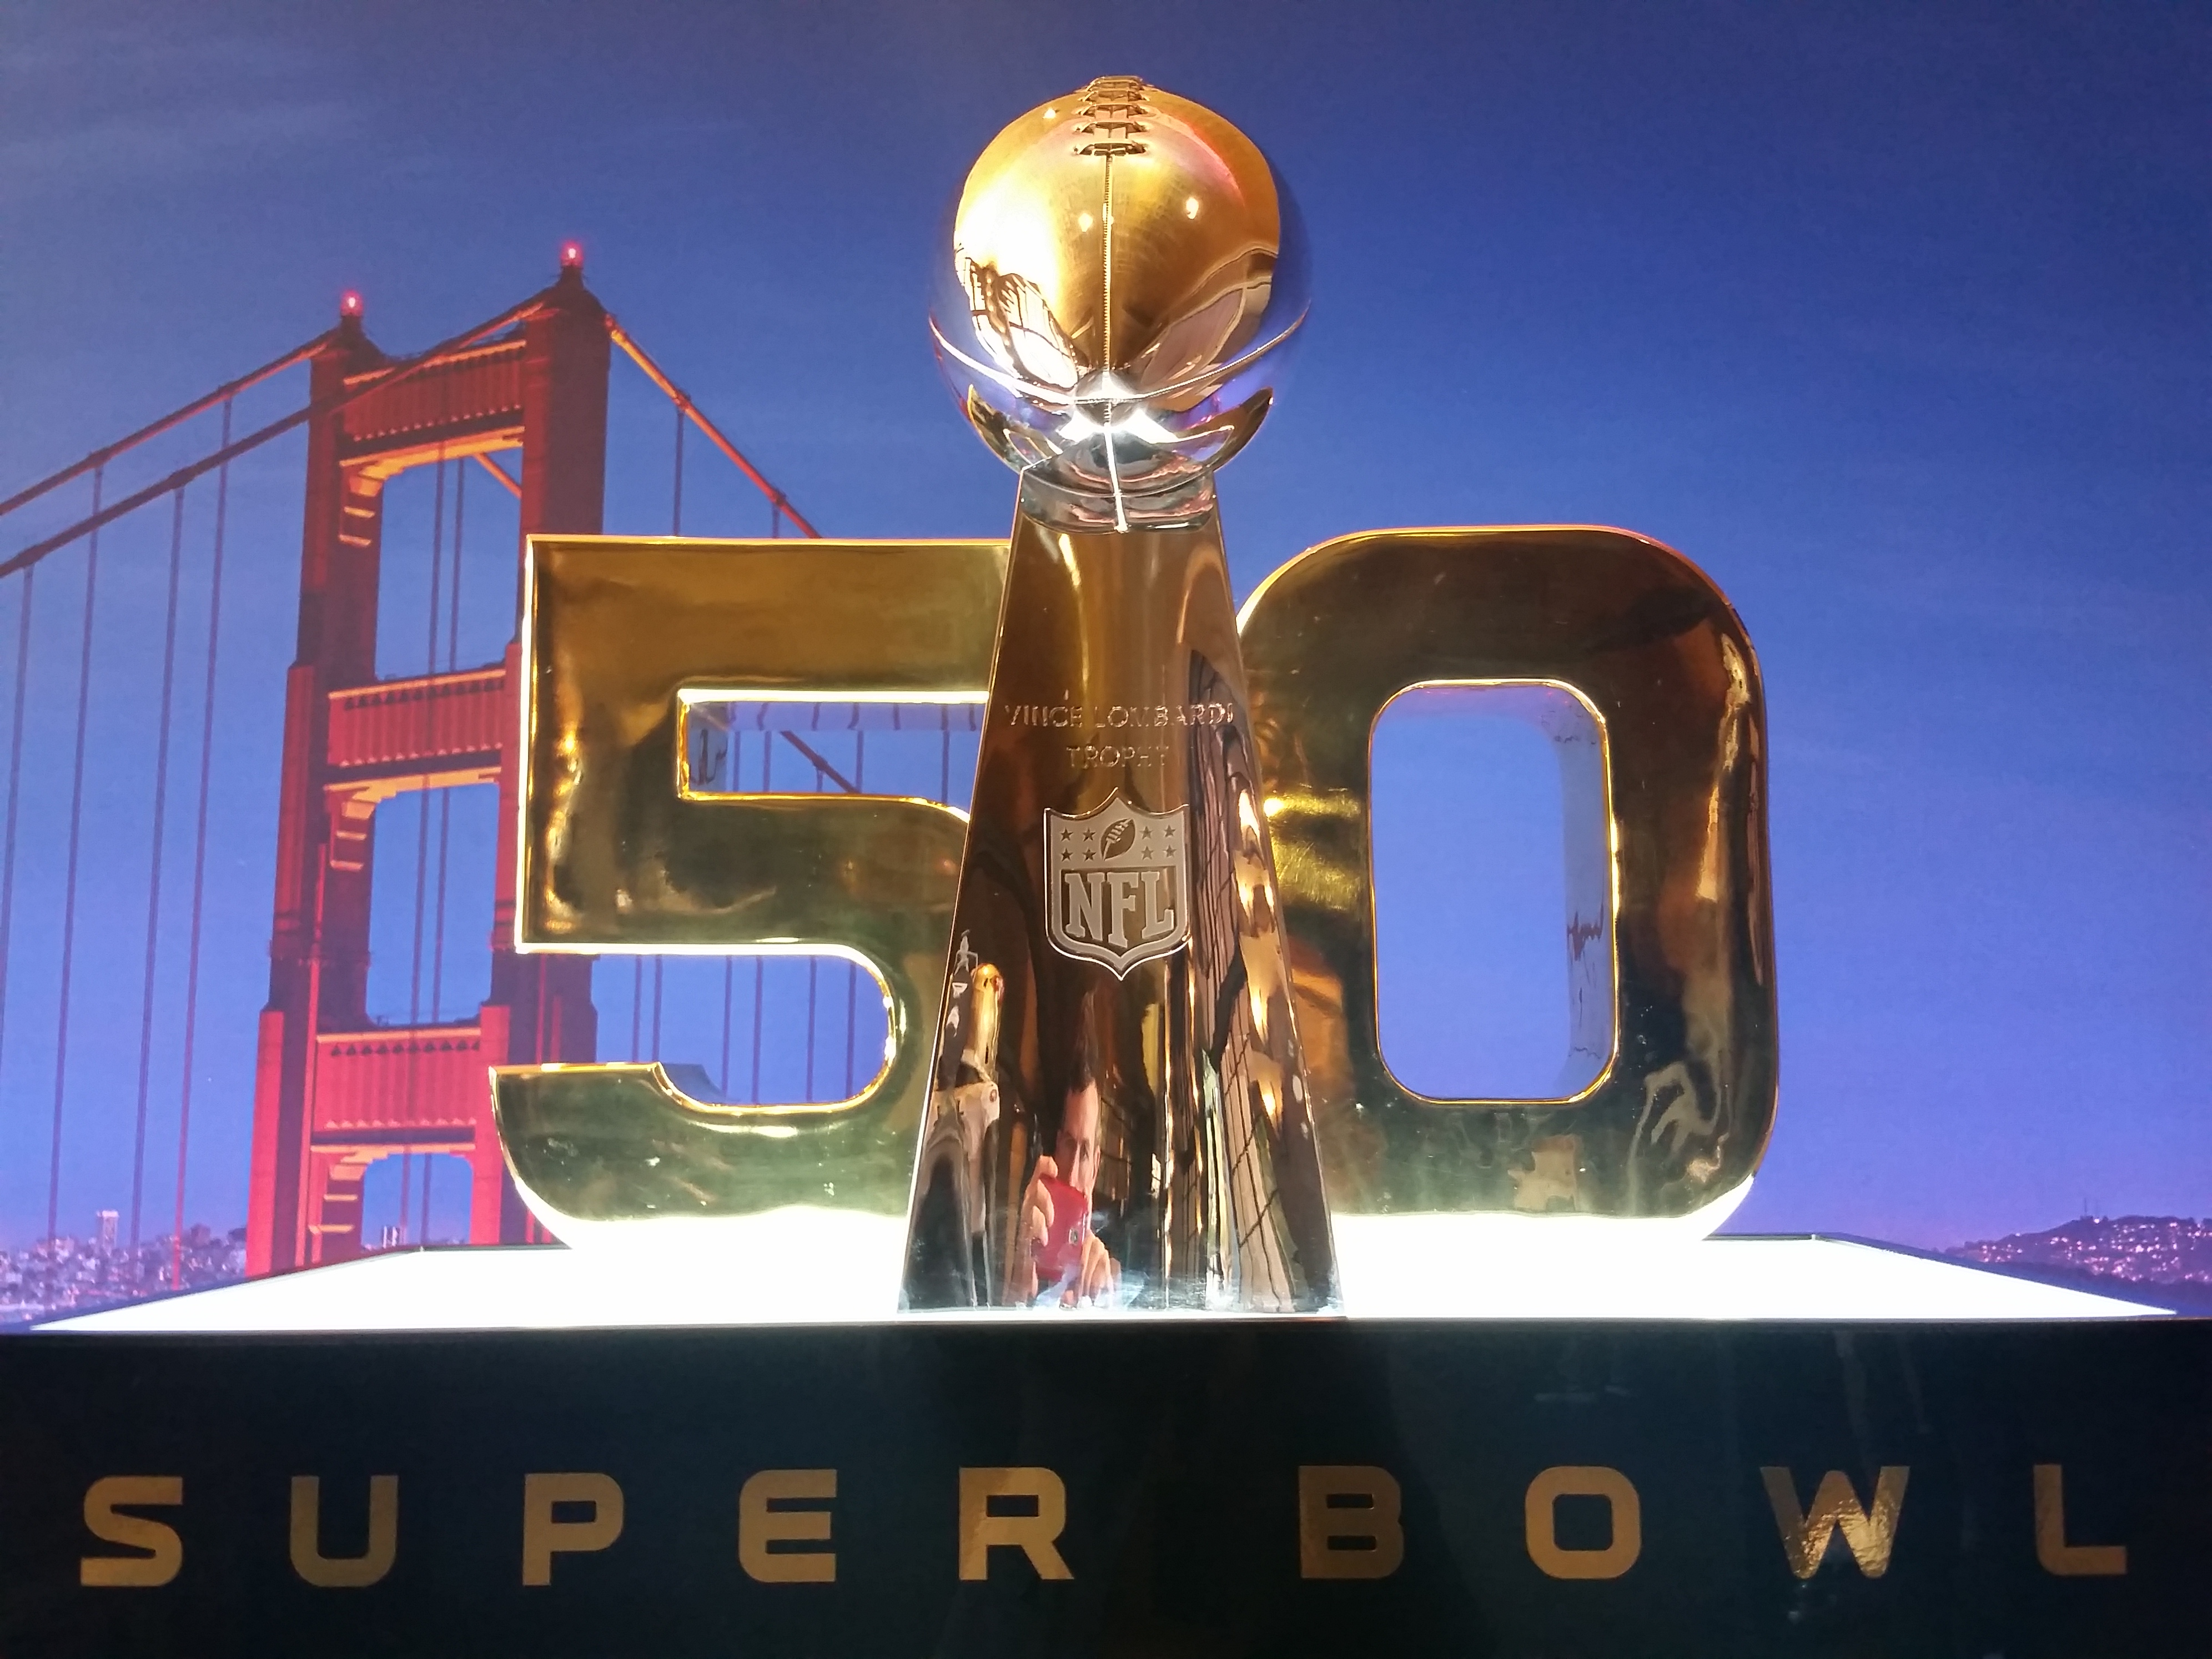 The NFL unveiled some of its Super Bowl 50 plans at the league's Annual Meeting